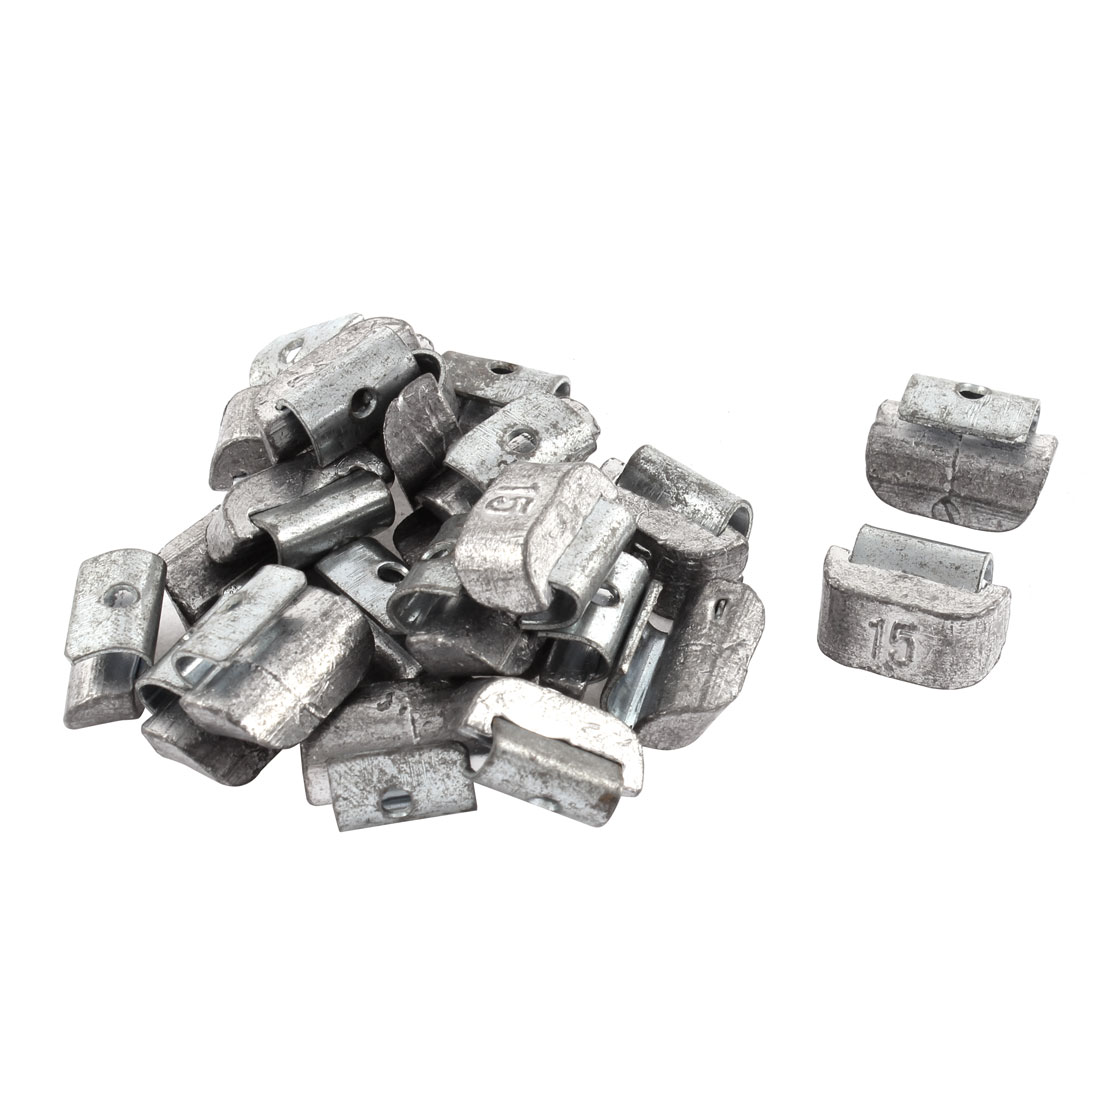 22 Pcs Sliver Tone Metal Clip On Tire Wheel Balancing Weights 15g for Car Auto